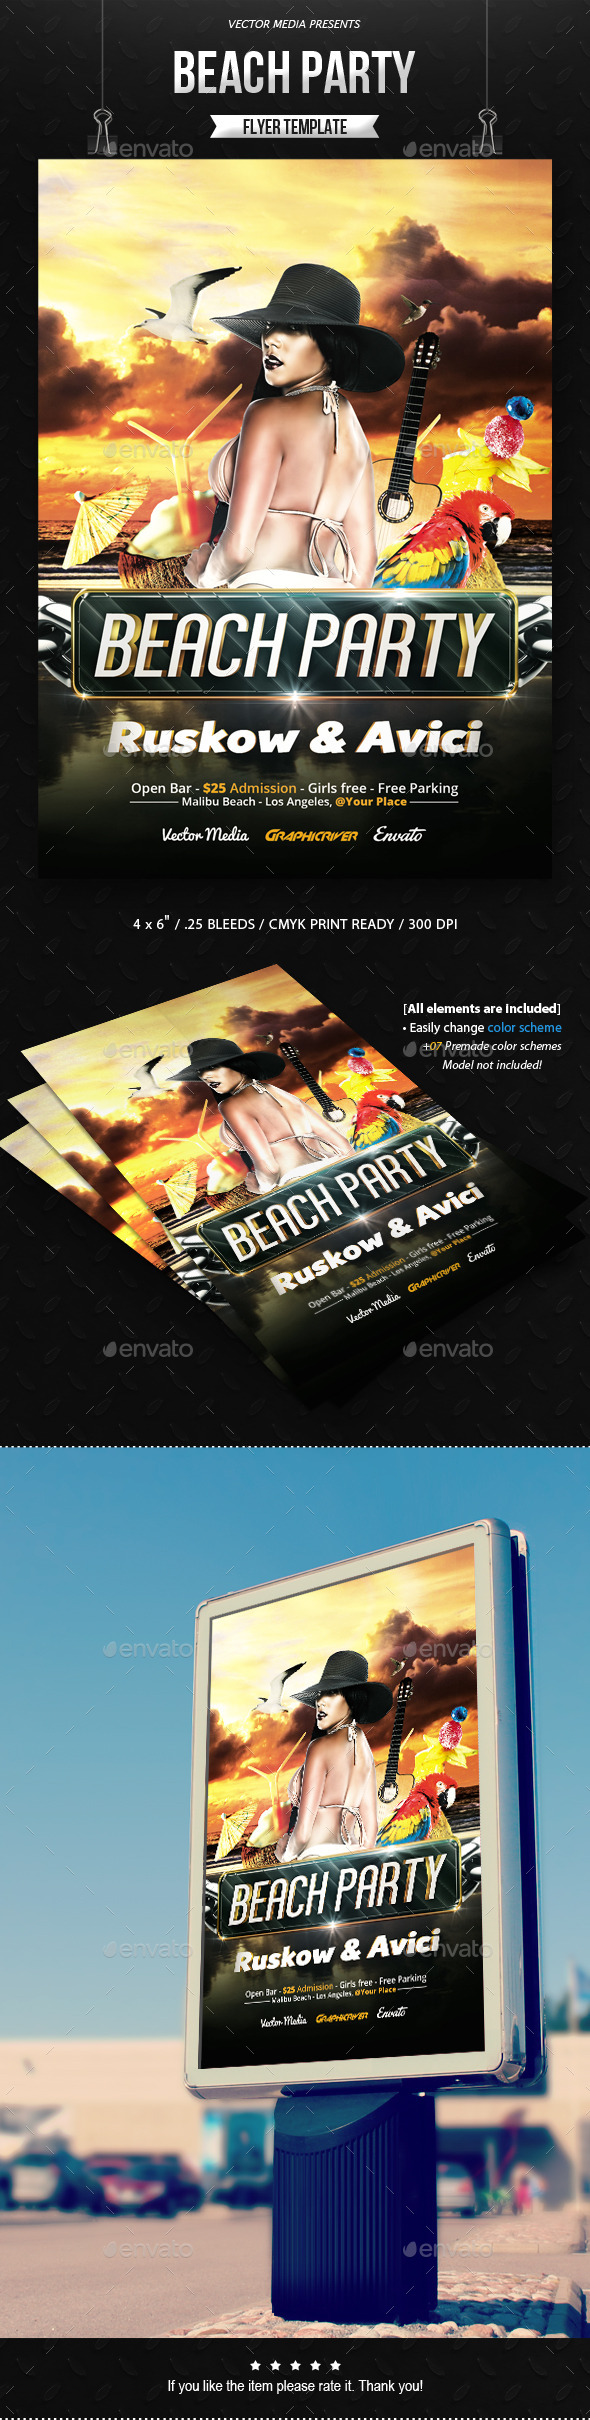 Beach Party - Flyer - Clubs & Parties Events